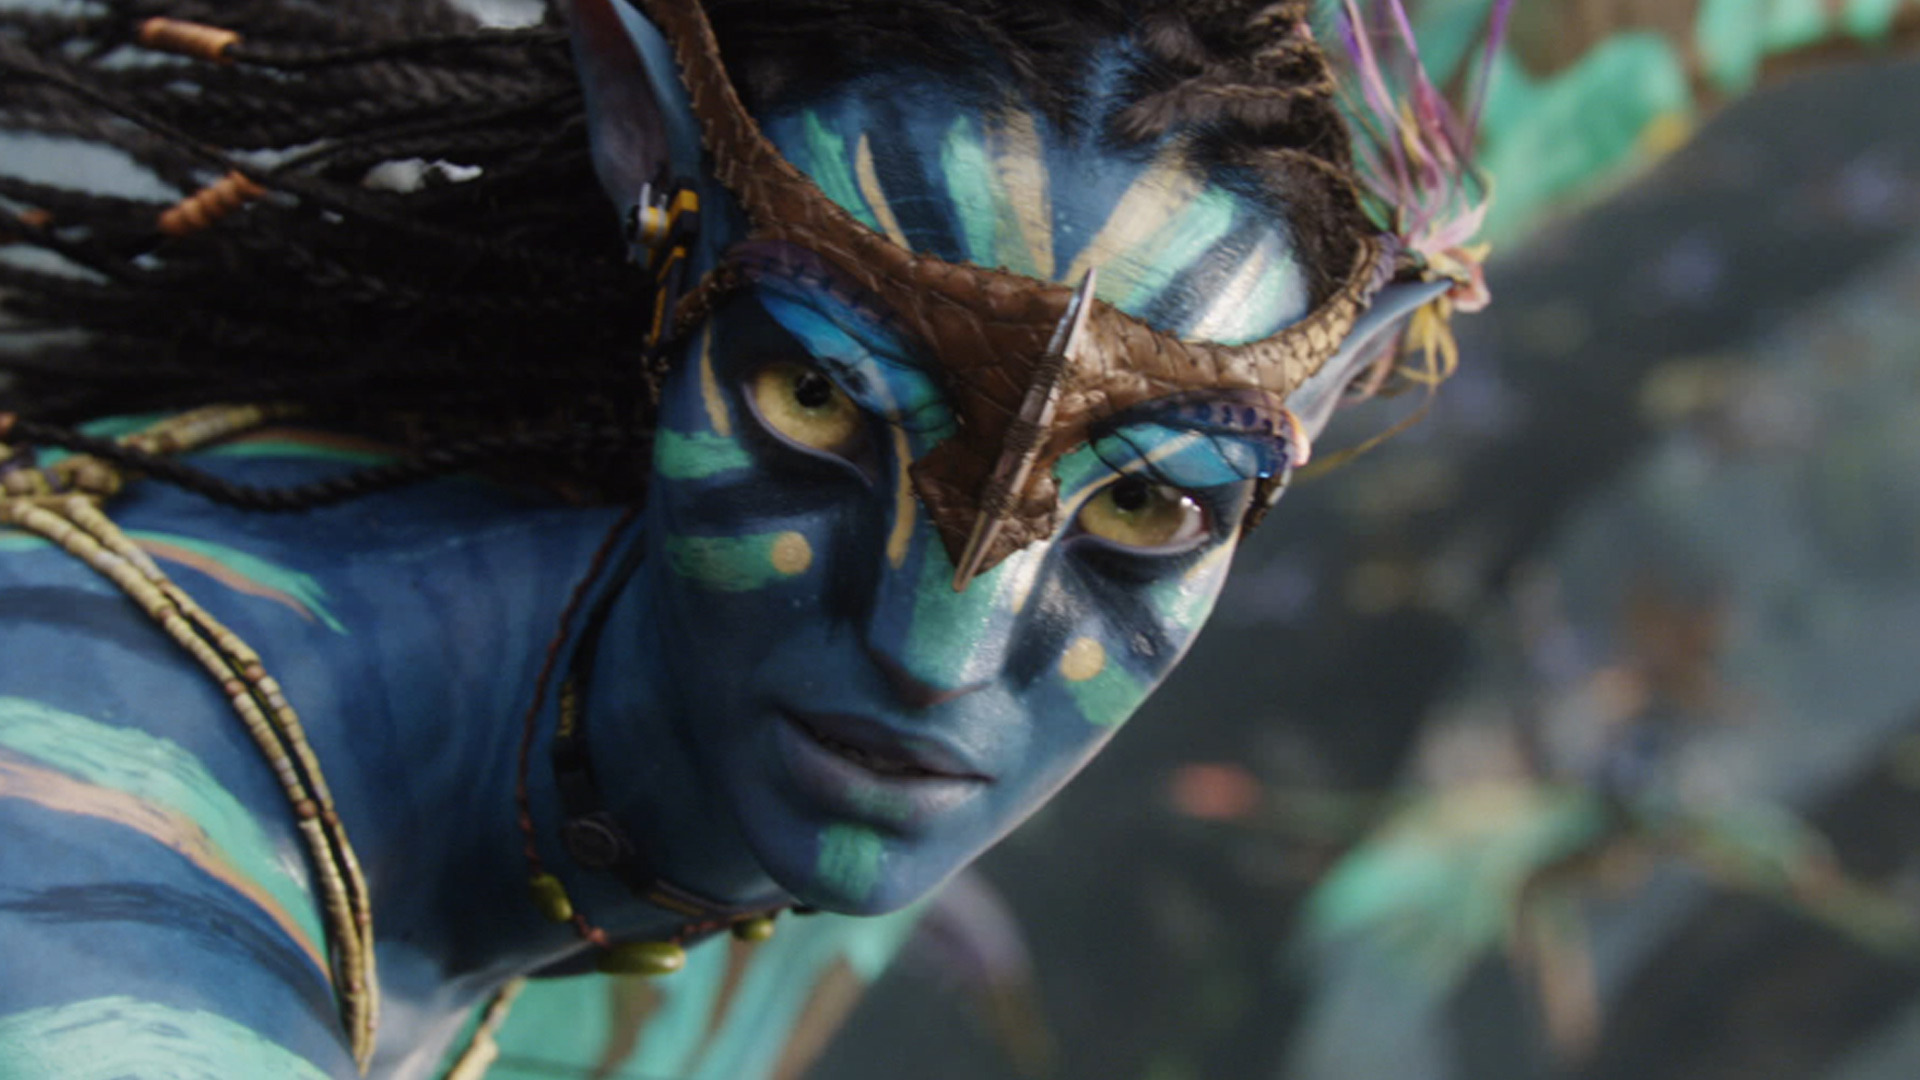 Free Hd Movie Download Point Avatar 2009 Free Hd Movie: Avatar Wallpapers 1920×1080 (44 Wallpapers)